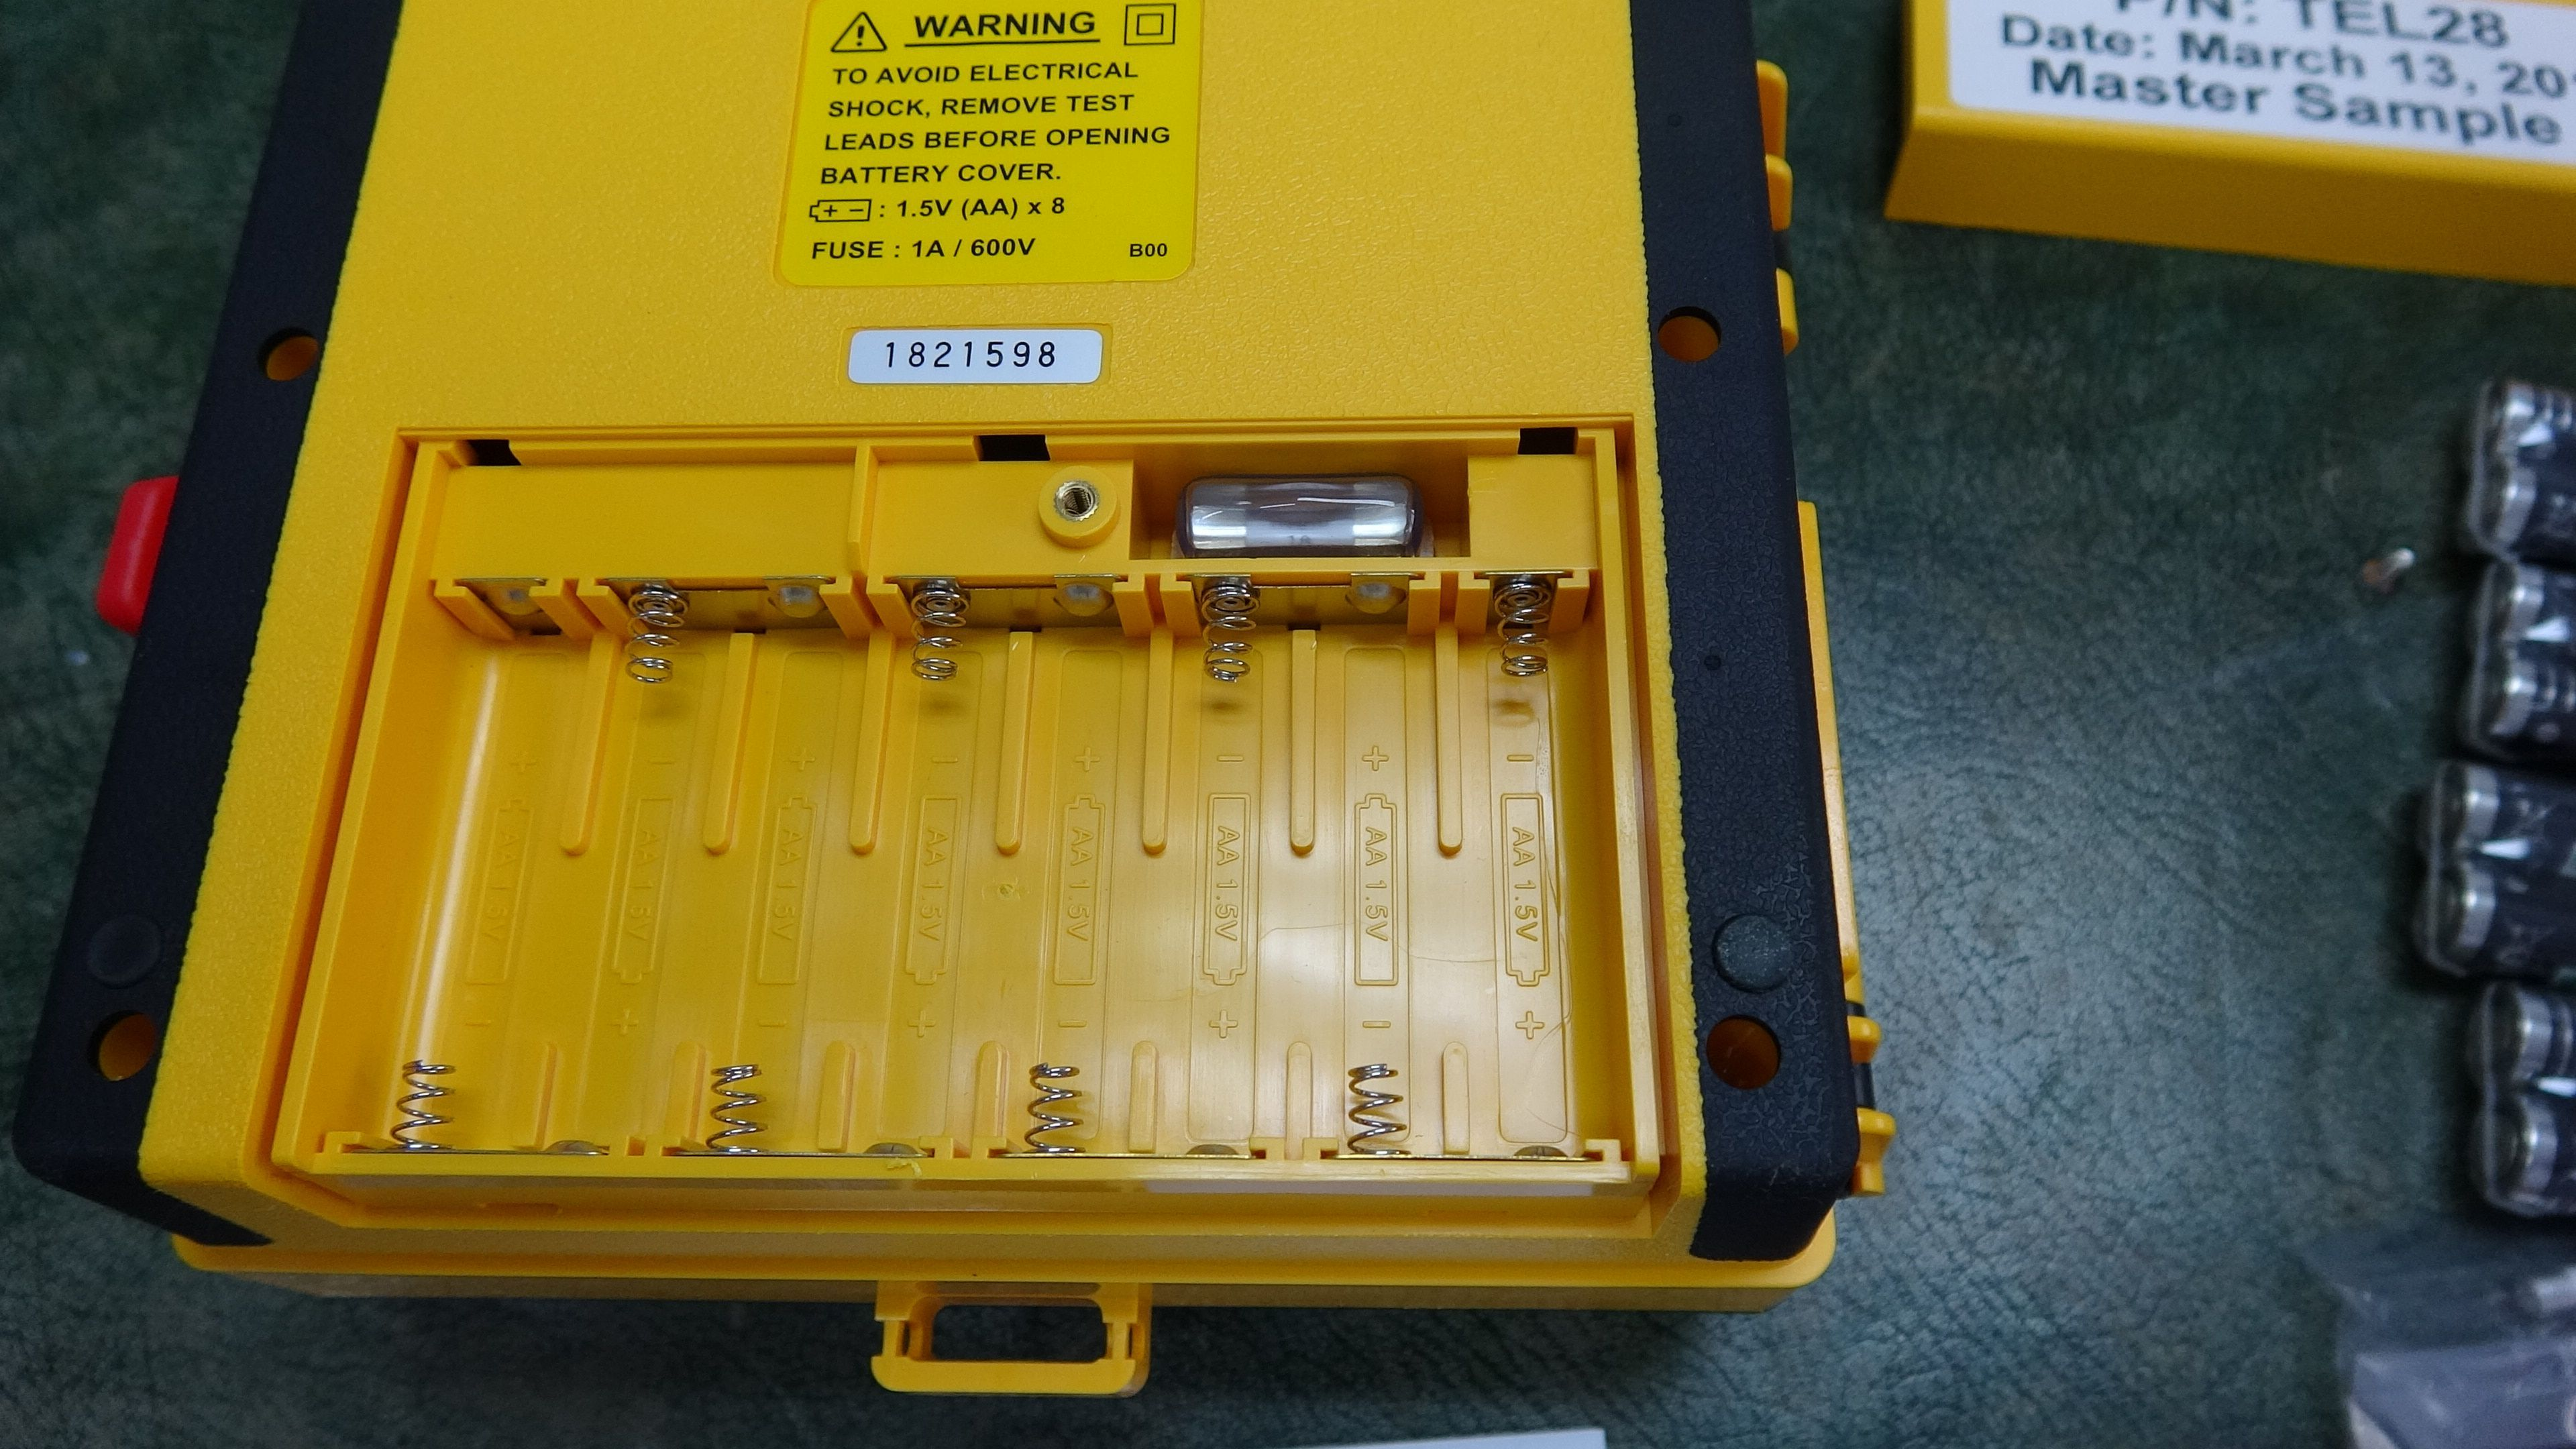 The Fuse of your TOPTRONIC TEL28 is located inside the ... Yellow Test On Fuse Box on